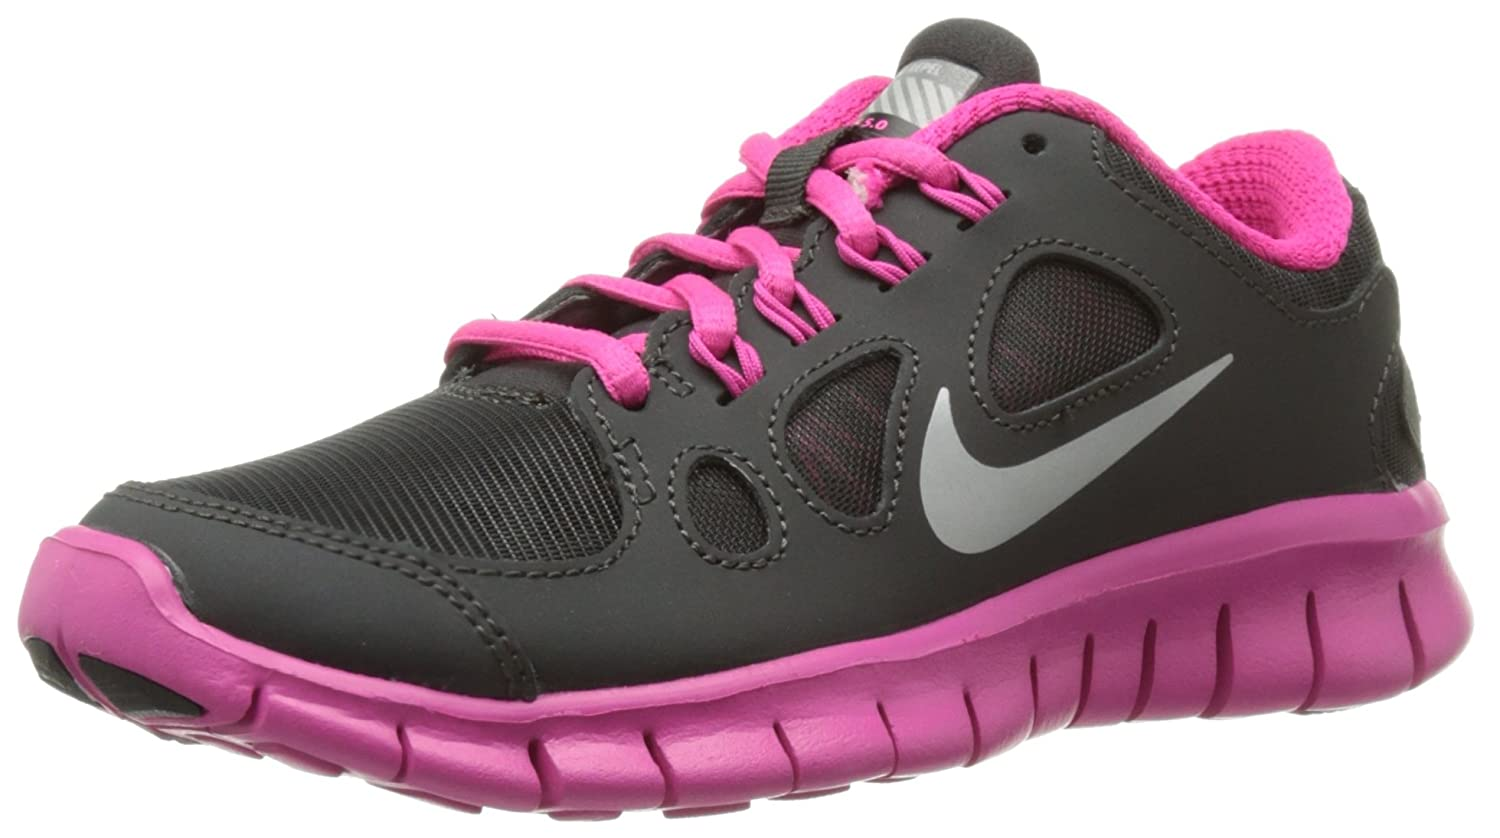 official photos c5df4 5d09b ... wholesale amazon nike free 5.0 shield gs 616698 001 charcoal pink size  6.5y running 9350d ...